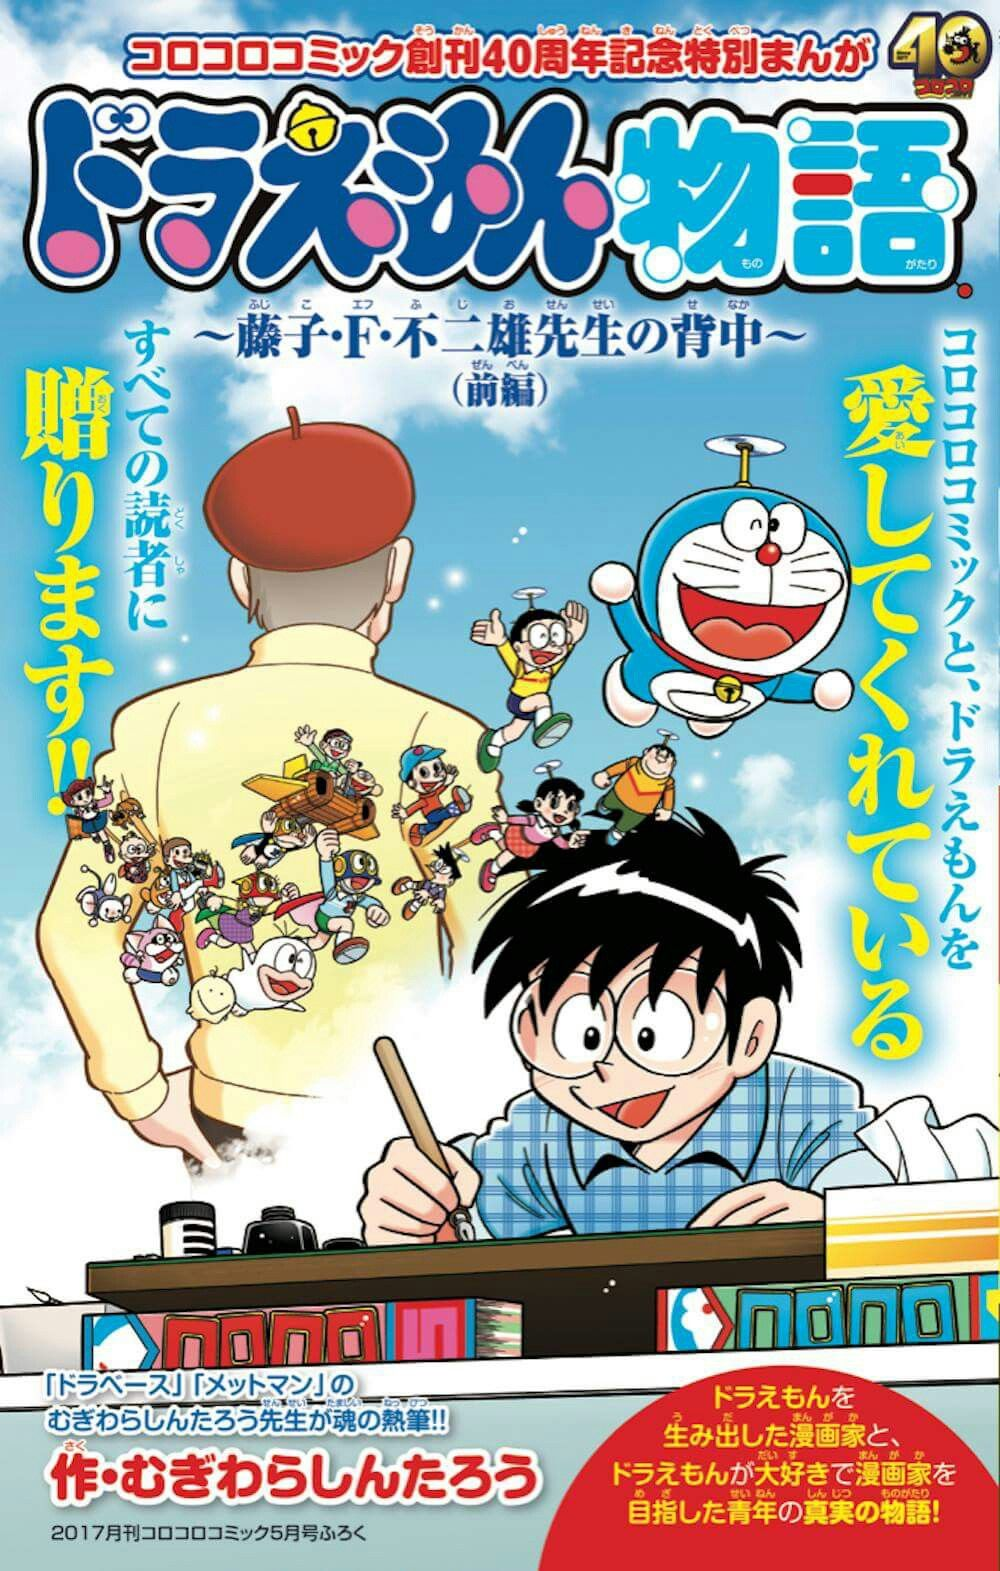 Pin by Yousoro10 on Doraemon Comic books, Book cover